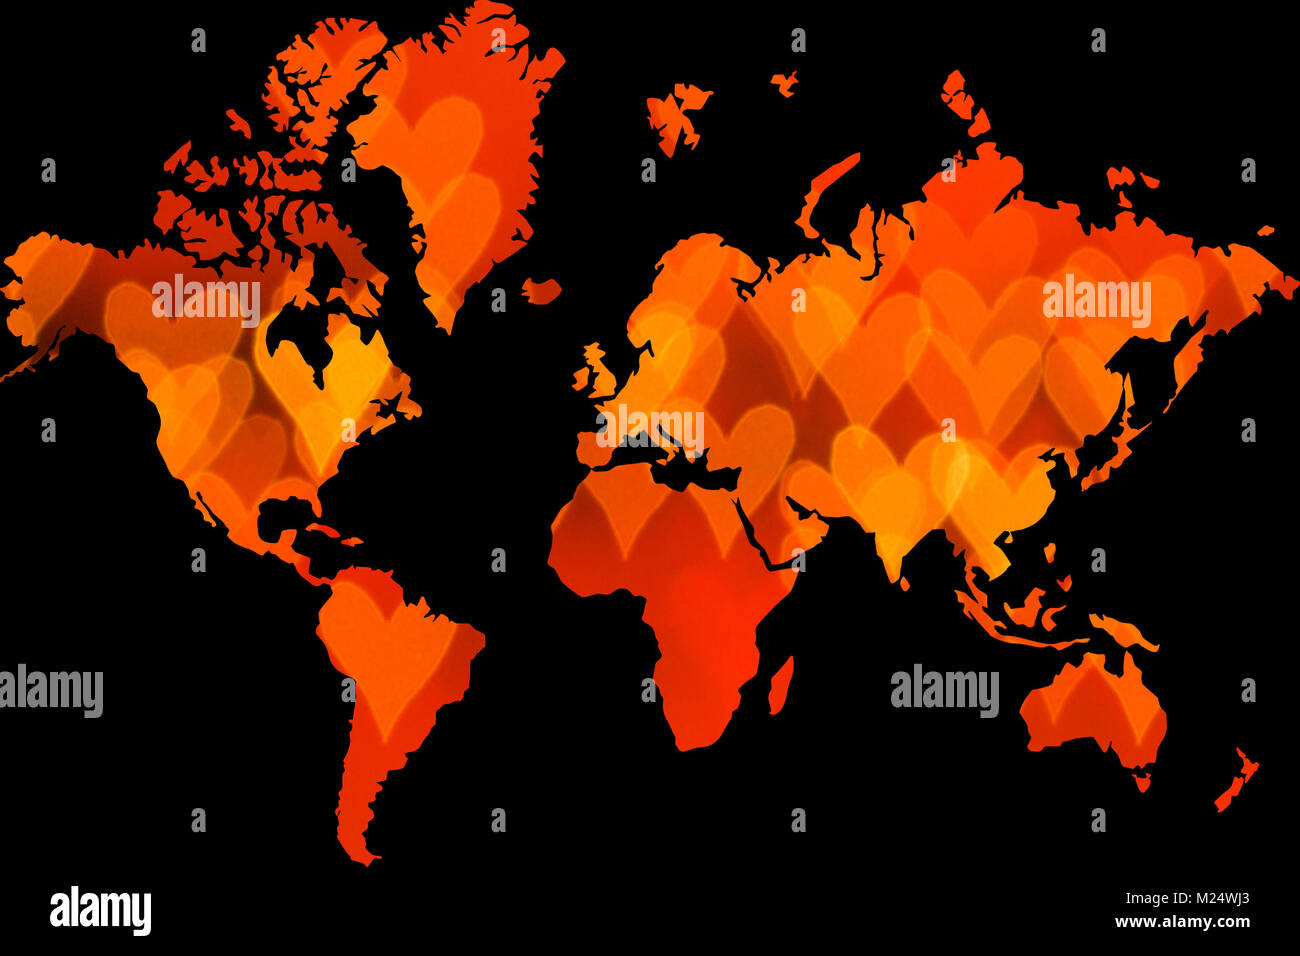 Red heart signs forming world map on black background stock photo red heart signs forming world map on black background gumiabroncs Images